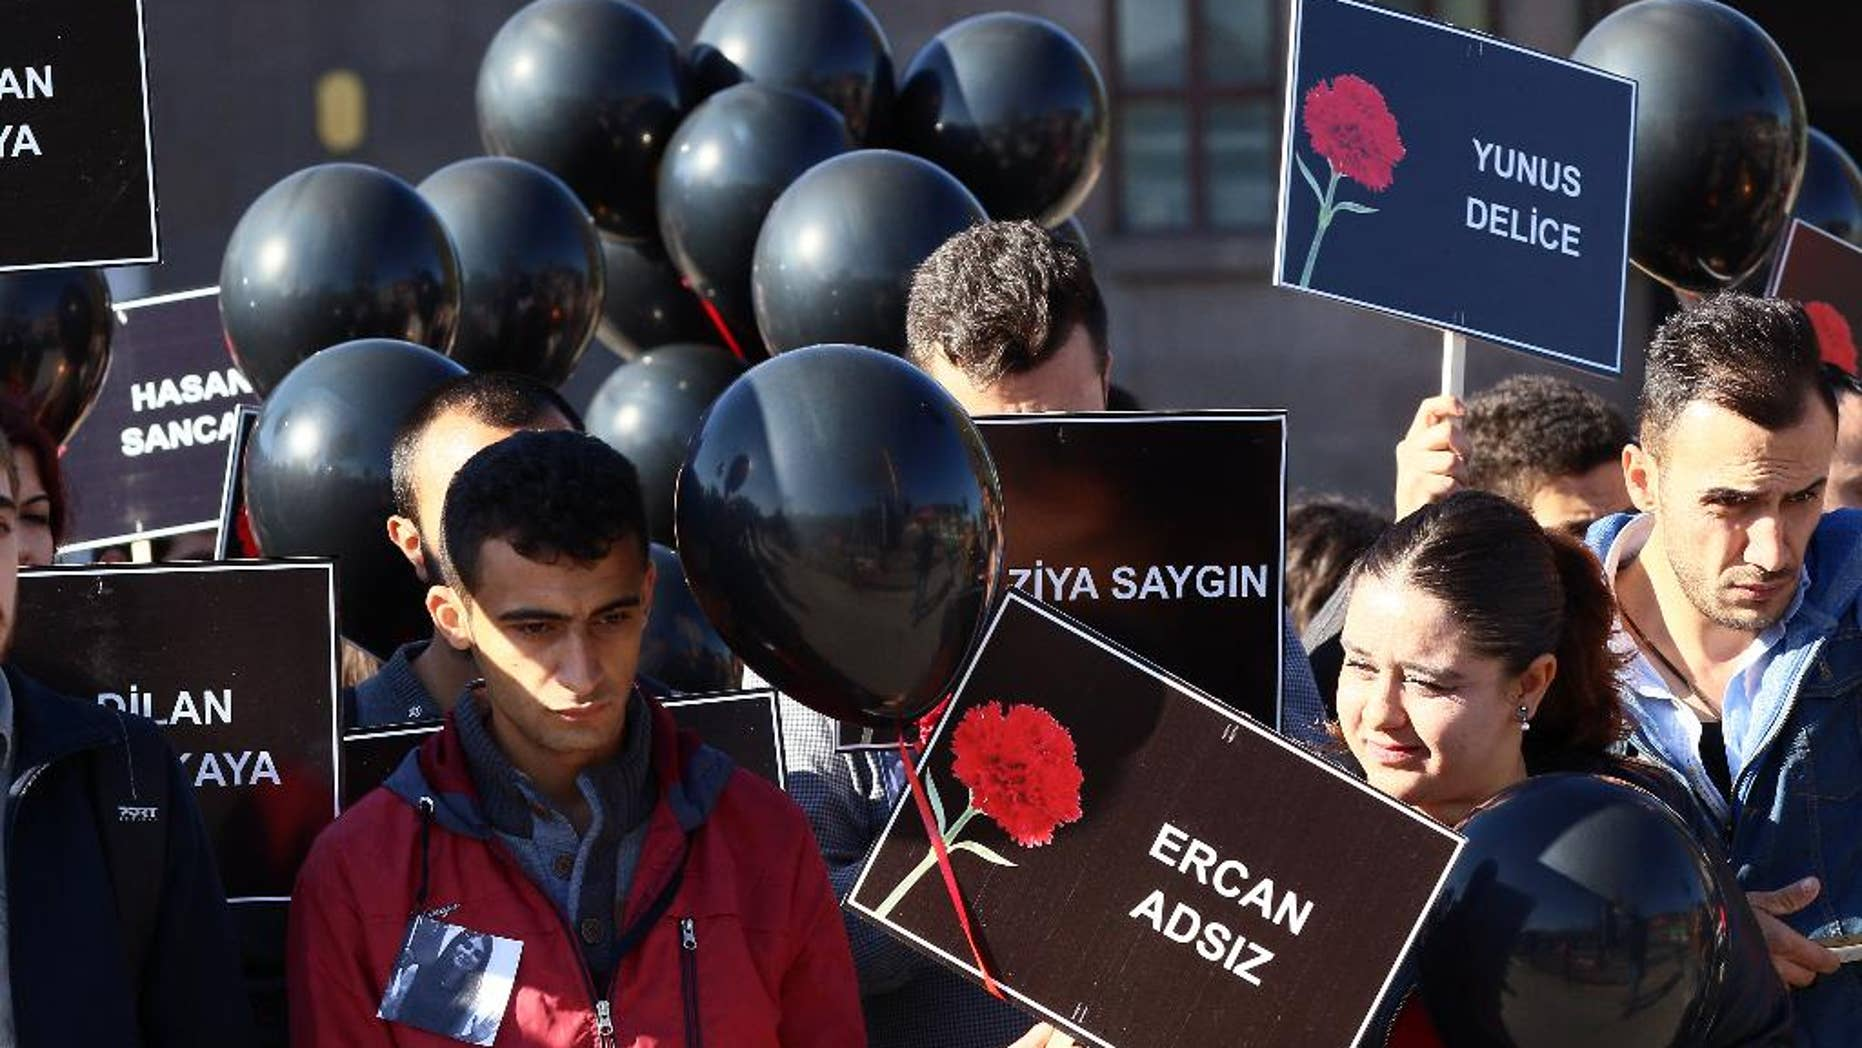 Members of youth organzations hold names of victims and black balloons as they gather at the site of twin explosions that killed 102 people and injured hundreds others more than two weeks ago outside the main train station in Ankara, Turkey, Monday, Oct. 26, 2015. (AP Photo)